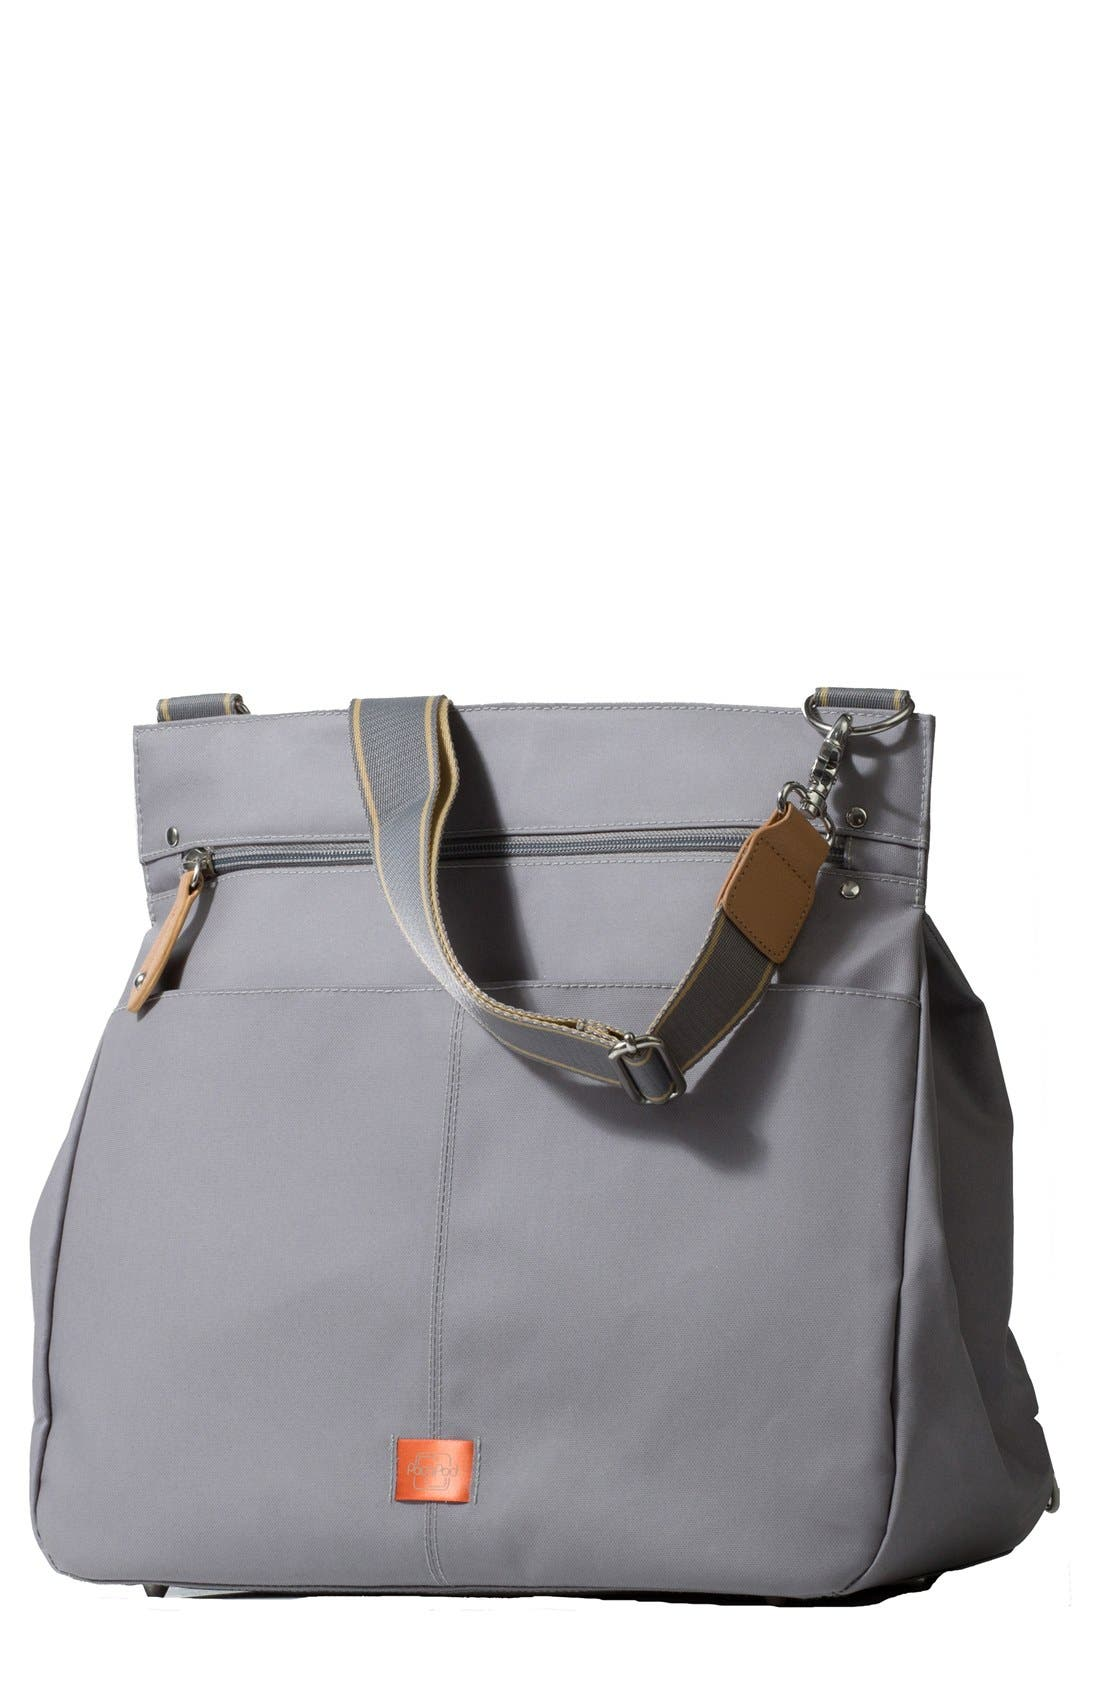 'Oban' Diaper Bag,                         Main,                         color, Elephant